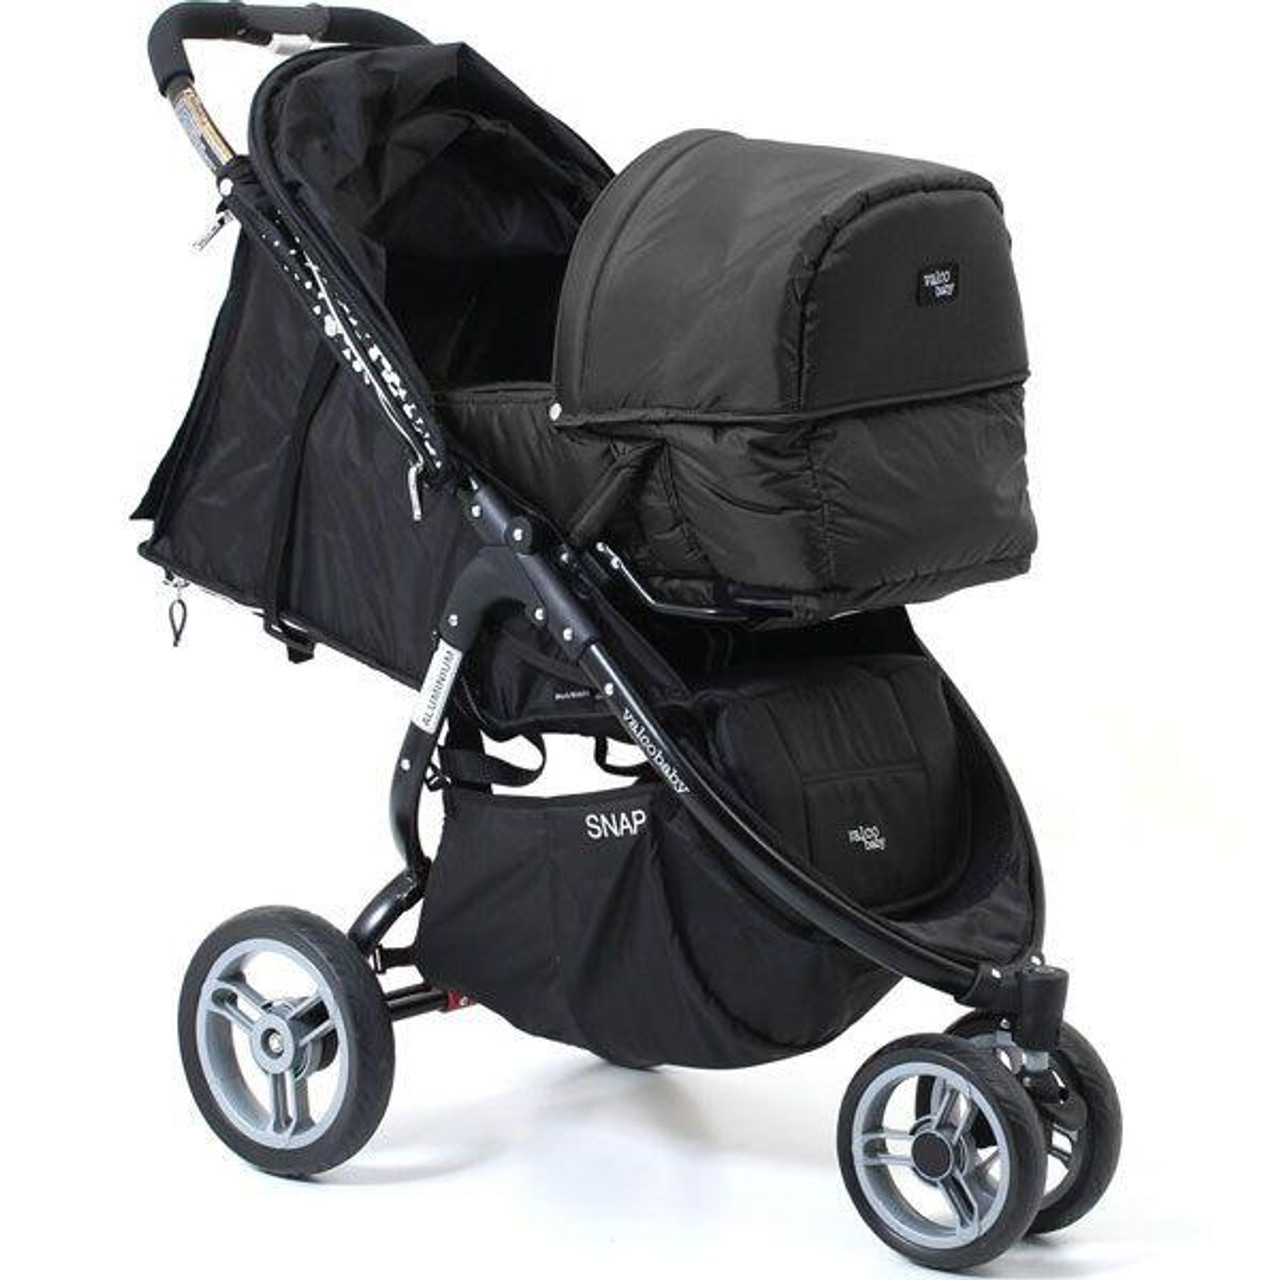 Valco Baby Eclipse Bassinet to Suit Snap & Snap 4 at Baby Barn Discounts Valco Eclipse Bassinet has a quick attach and release system to suit Valco Snap 4 stroller.